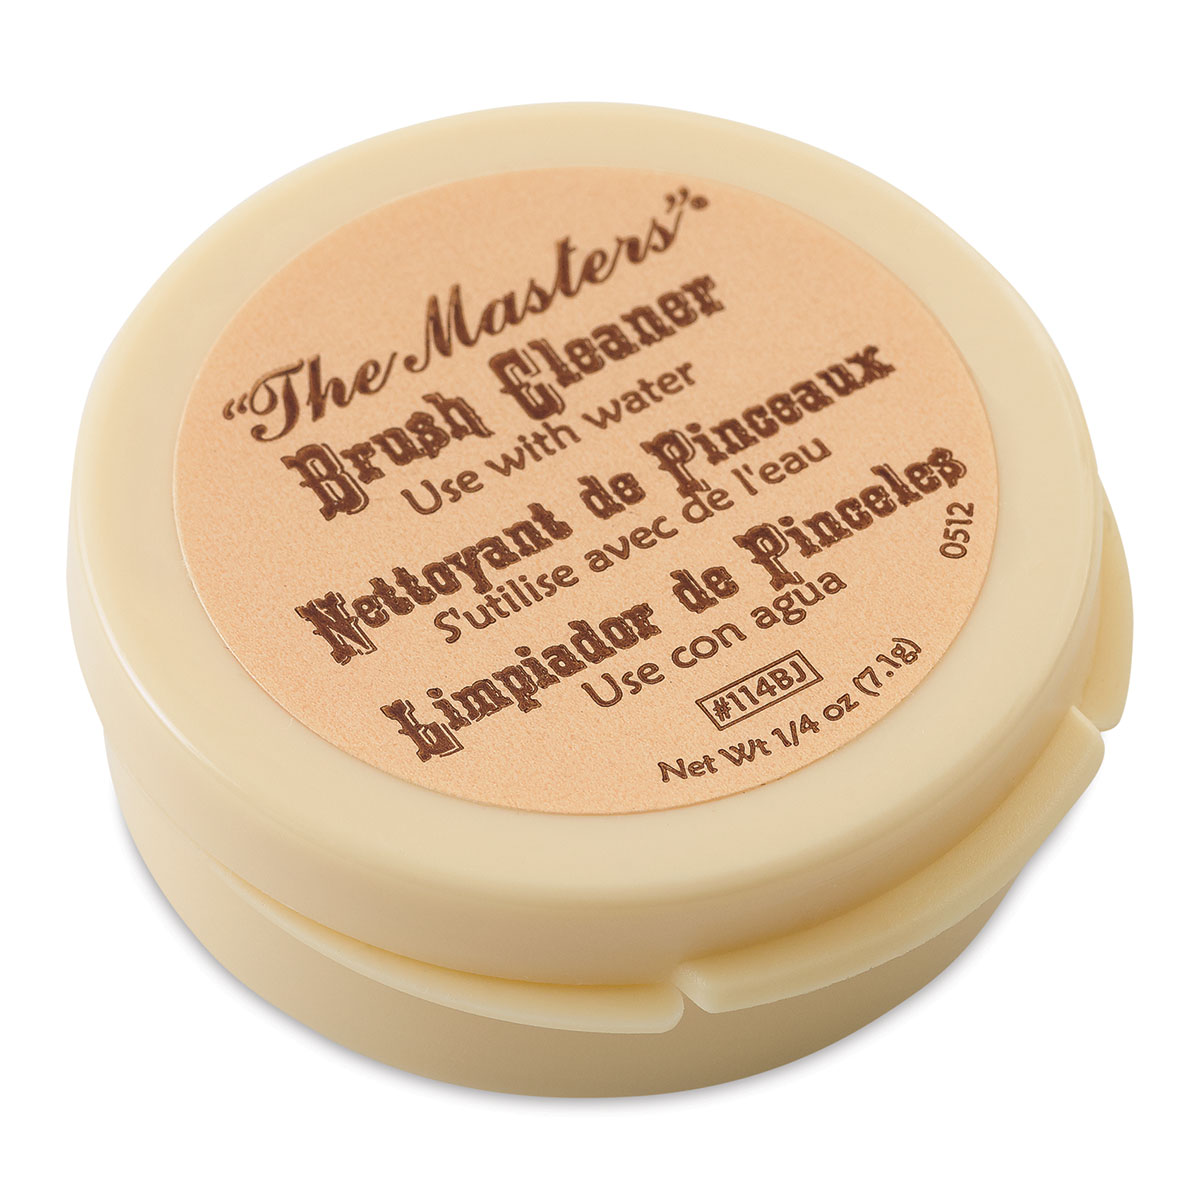 The Masters Brush Cleaner and Preserver, 1/4 oz.